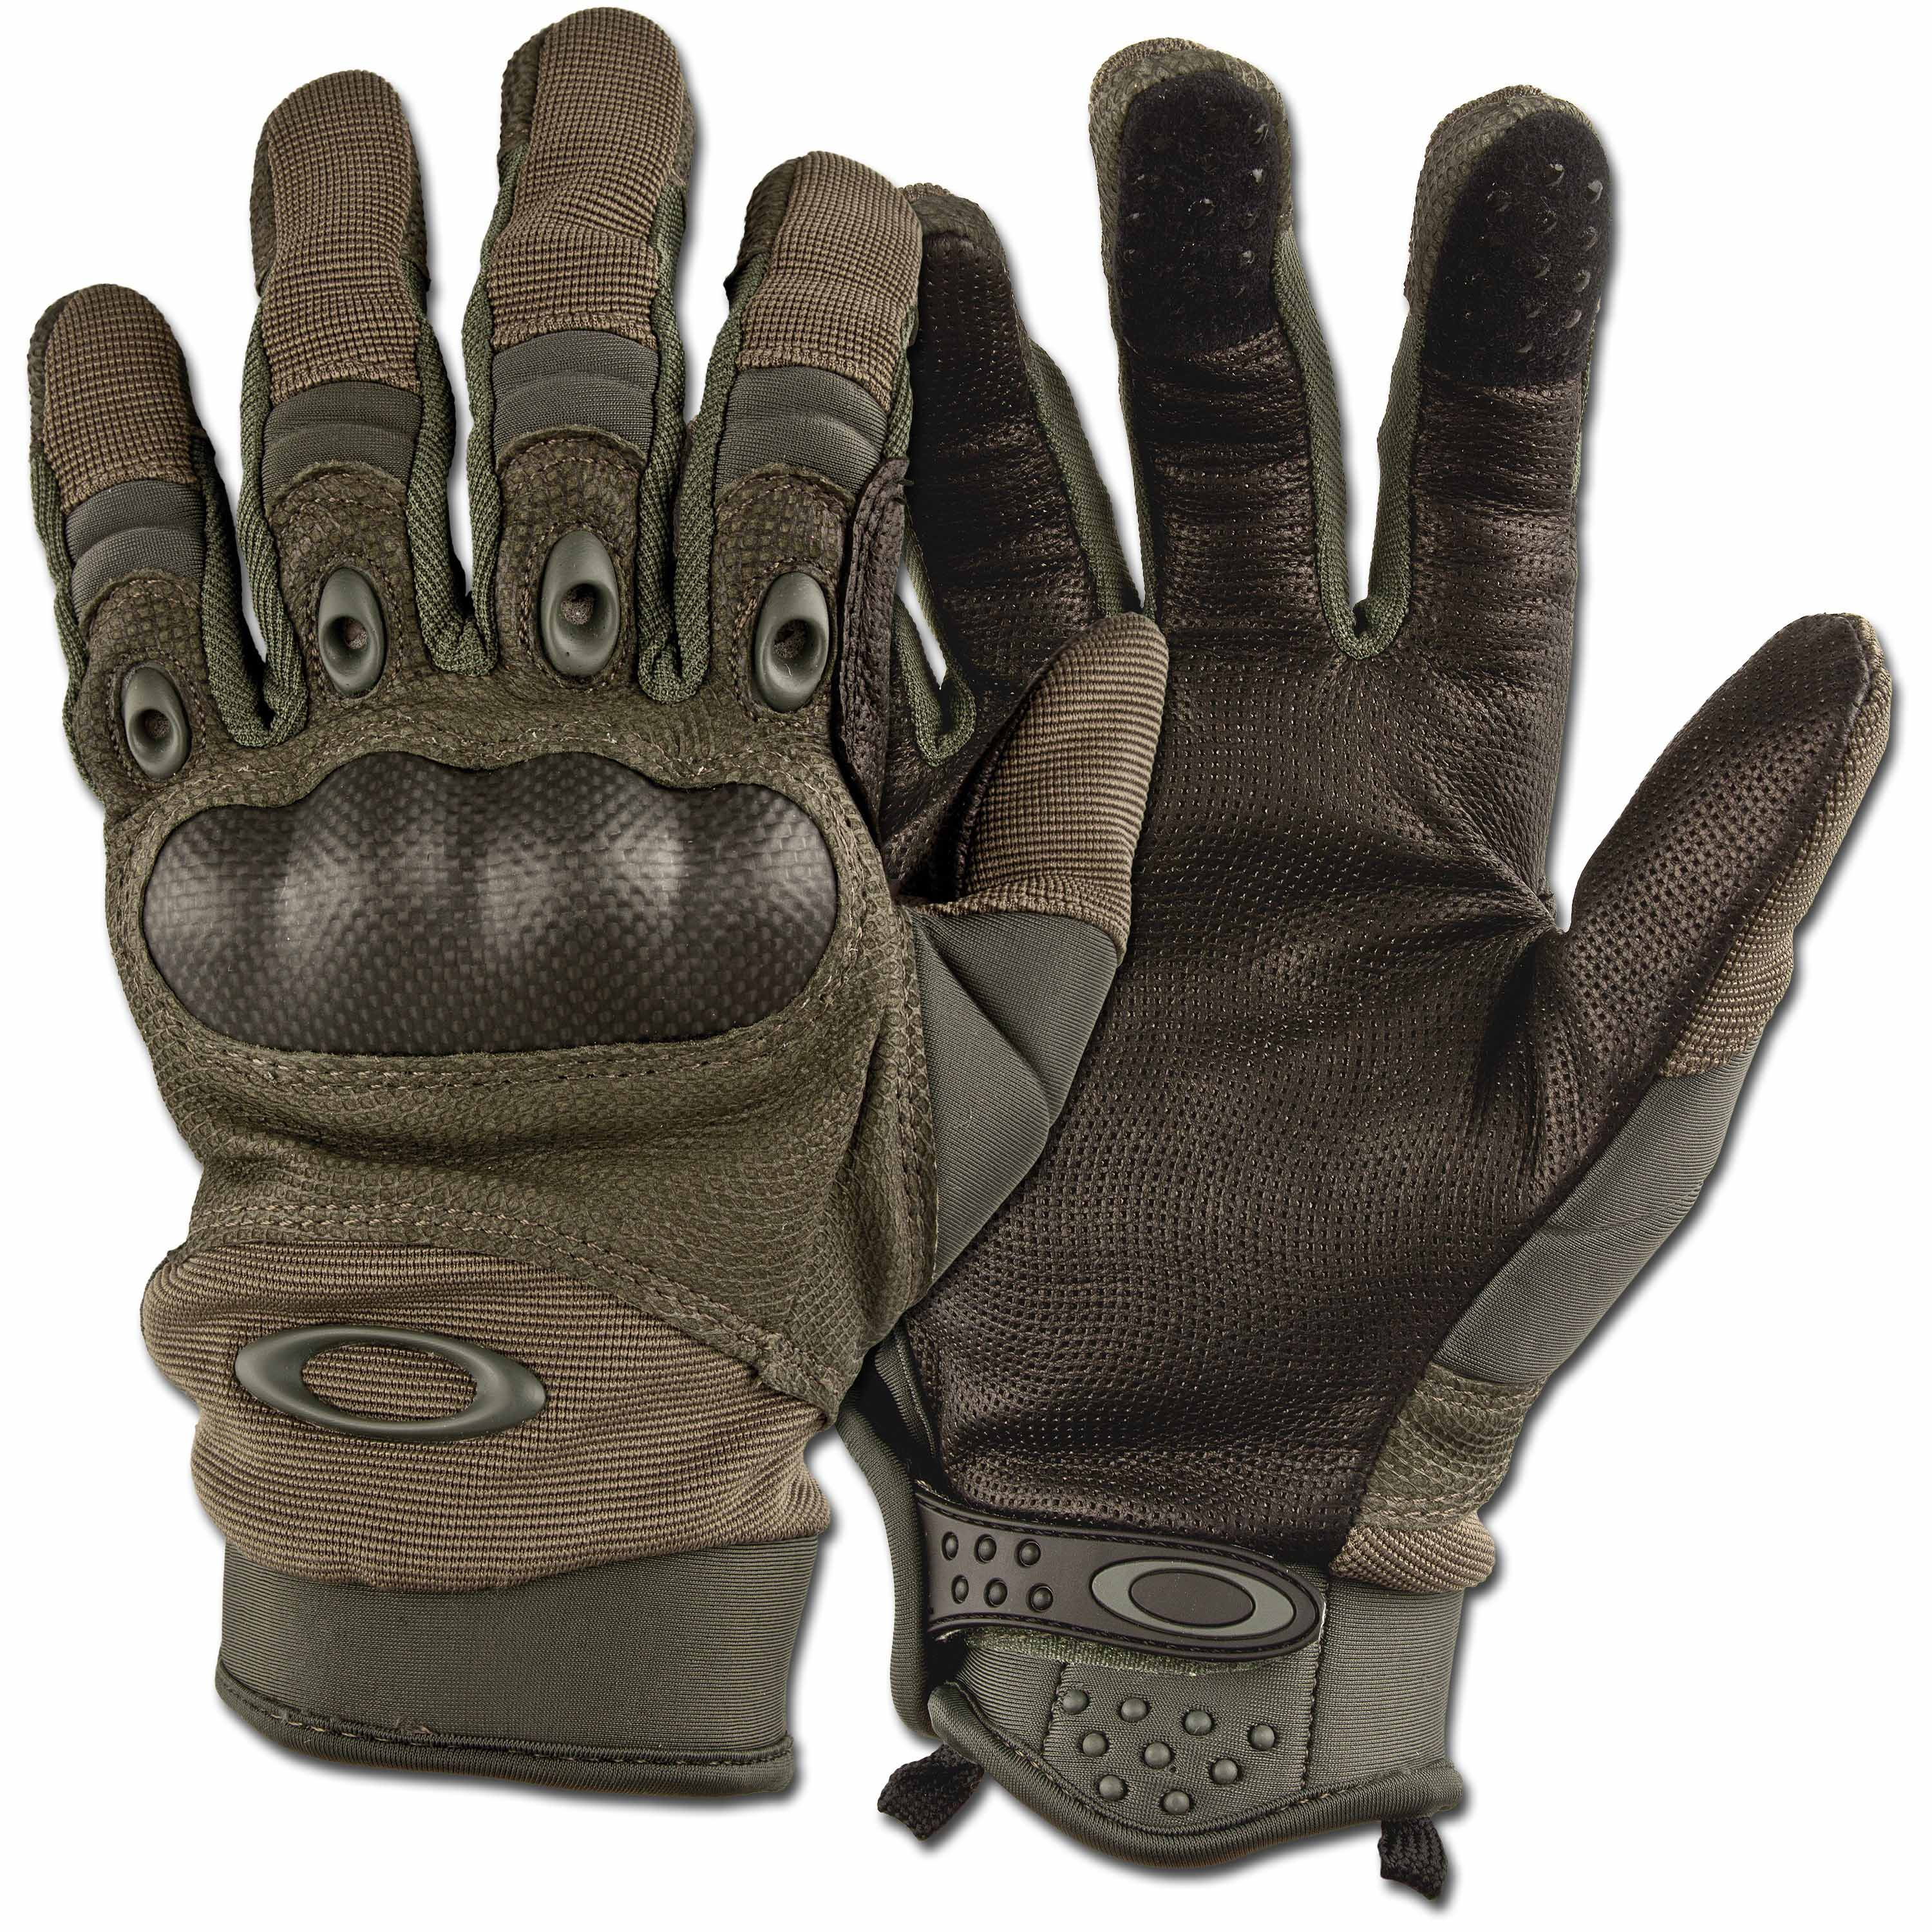 Purchase The Gloves Oakley Pilot Glove Olive By Asmc